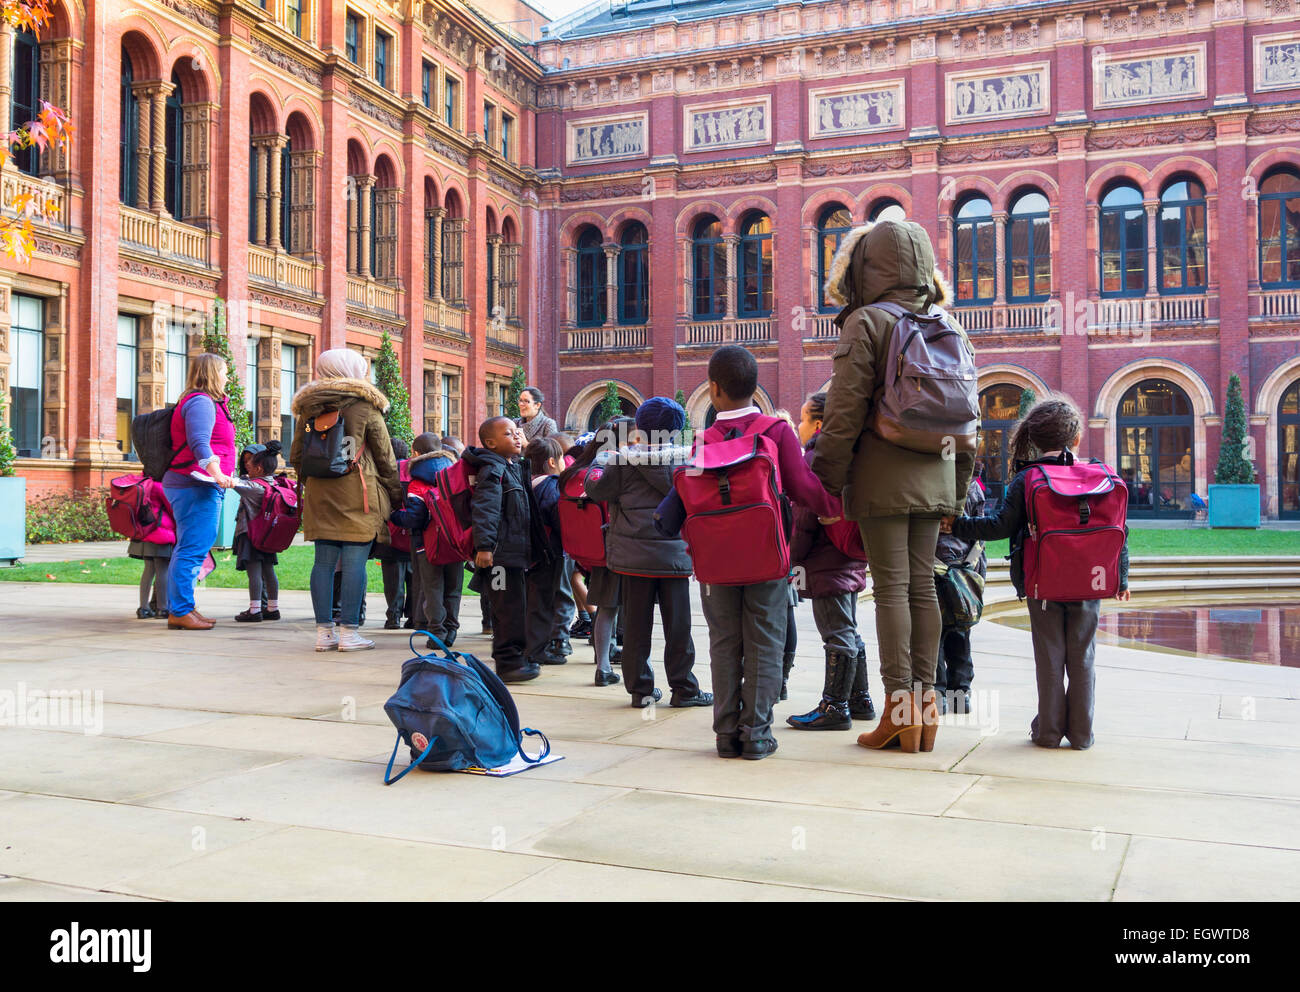 Primary school children on a school trip at the Victoria and Albert Museum, London, England, UK - Stock Image